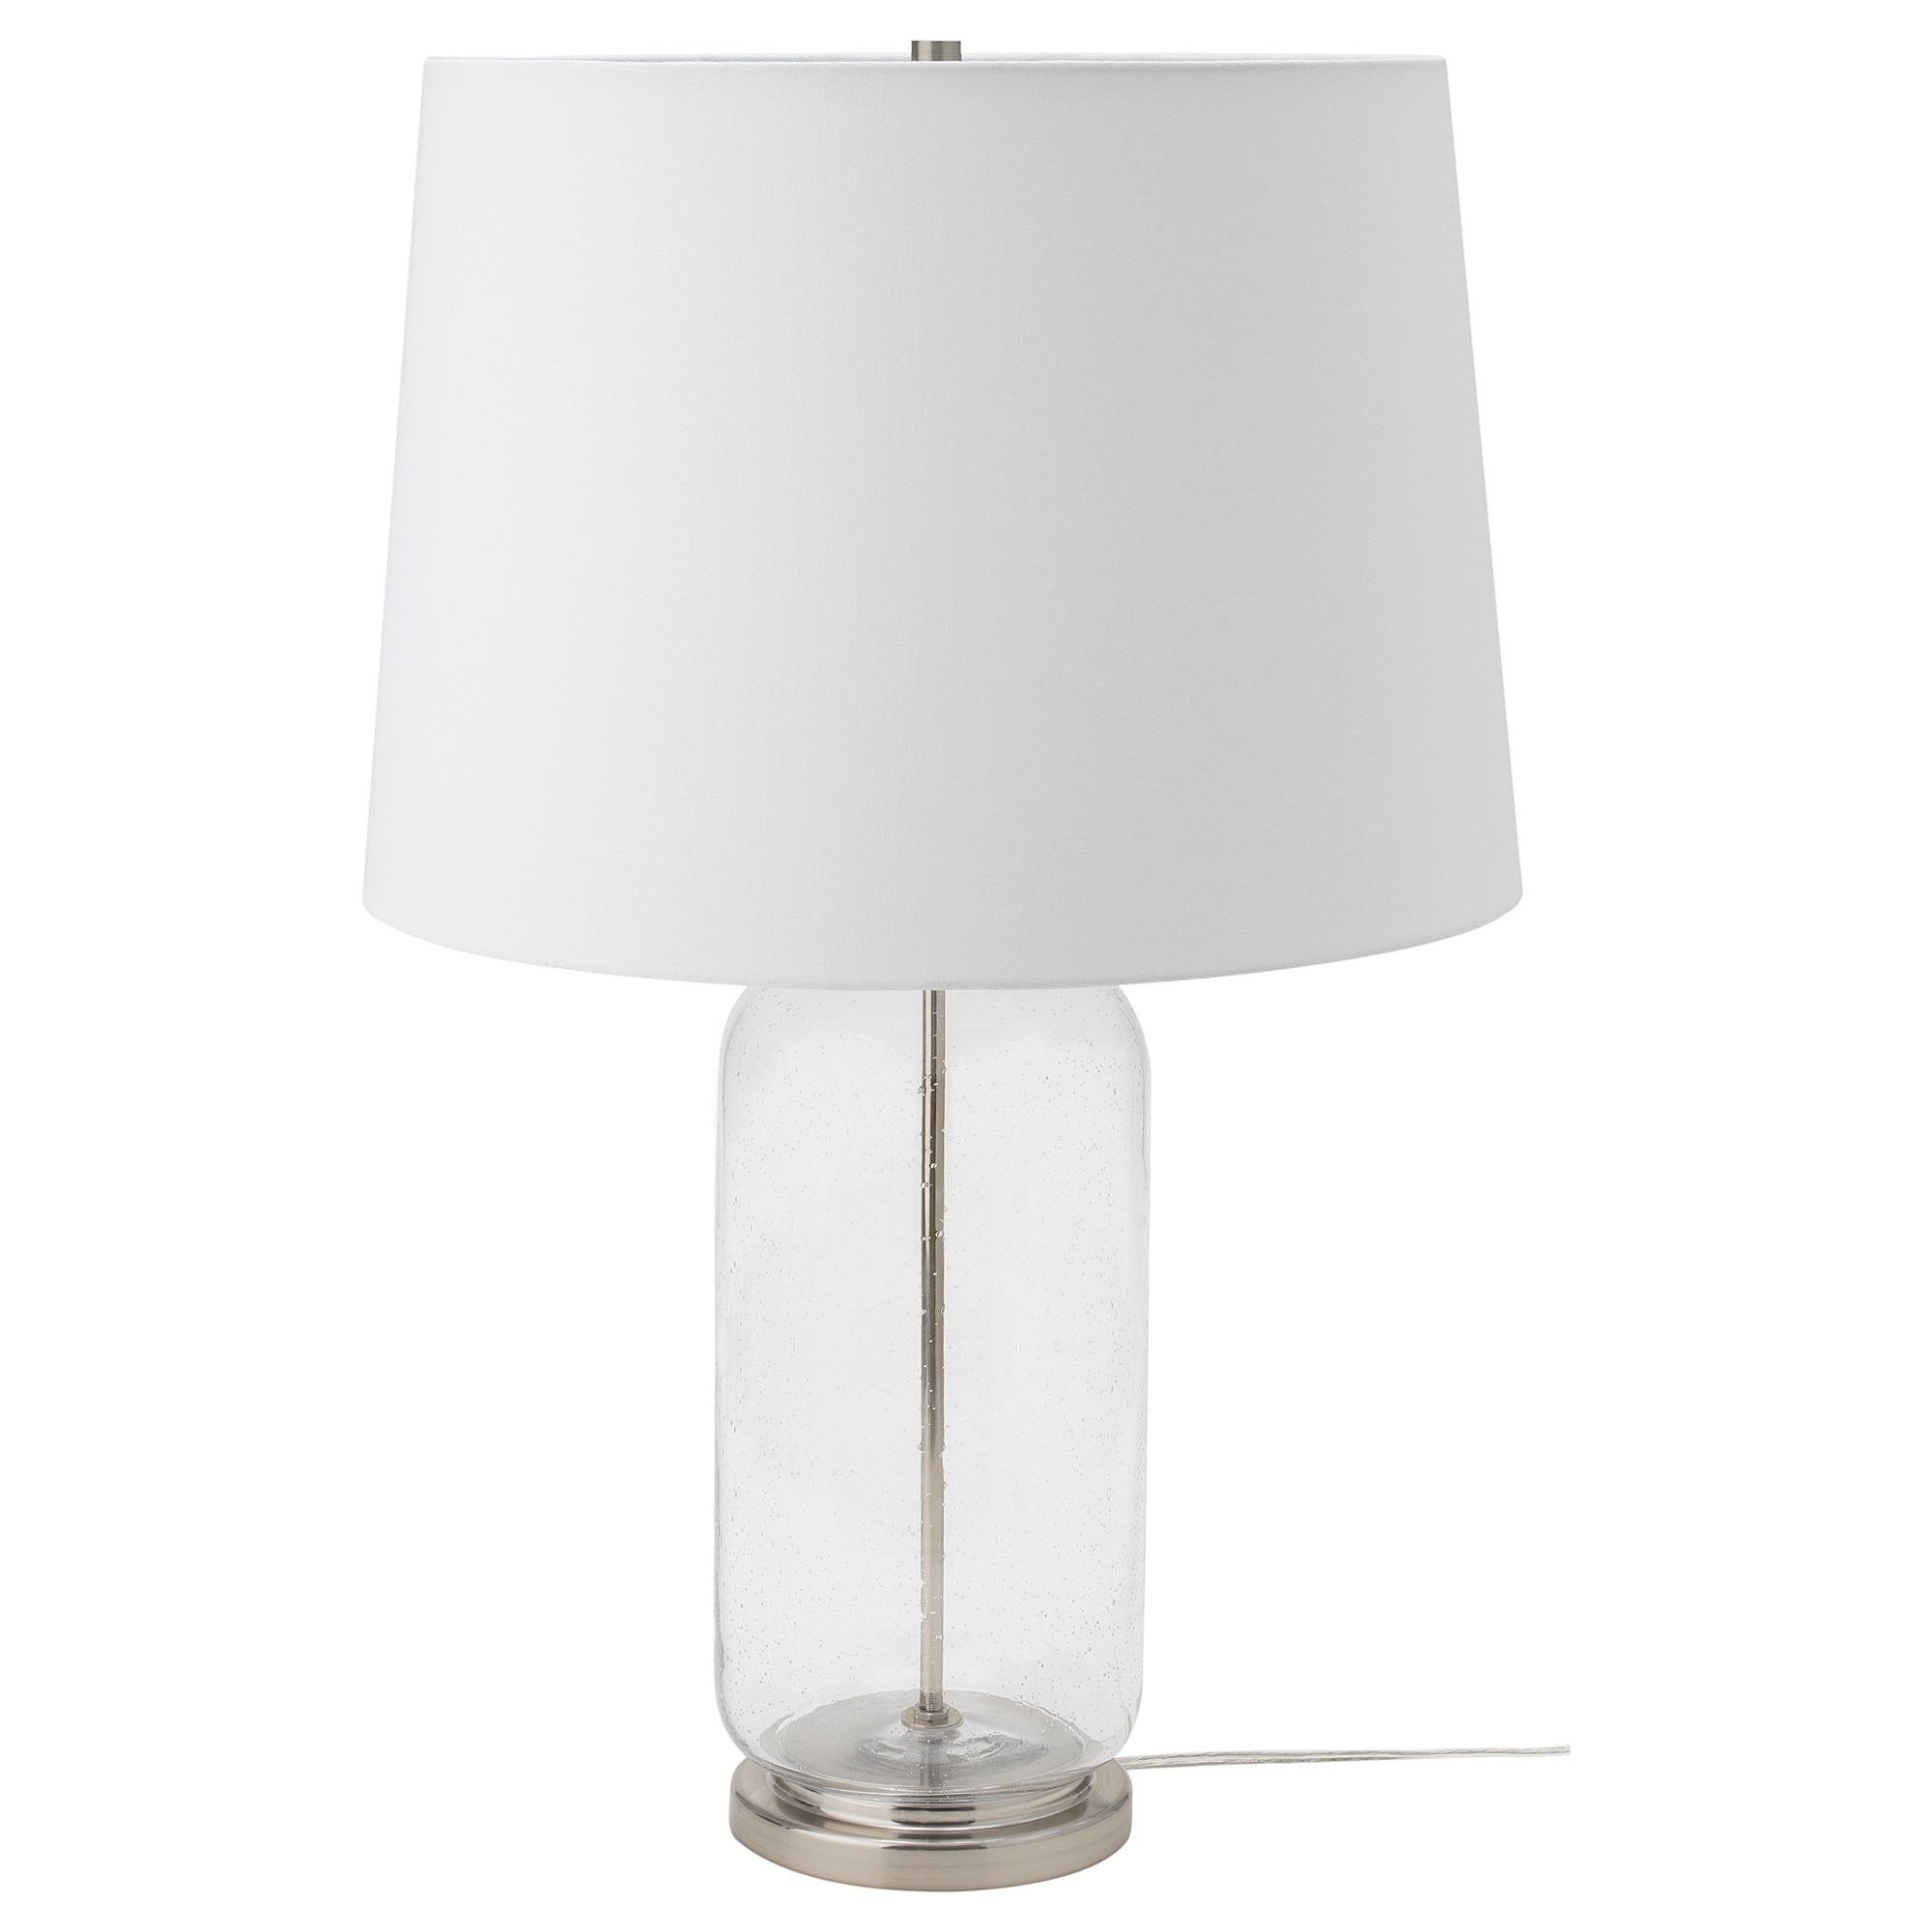 IKEA US Furniture and Home Furnishings | Lamp, Glass table